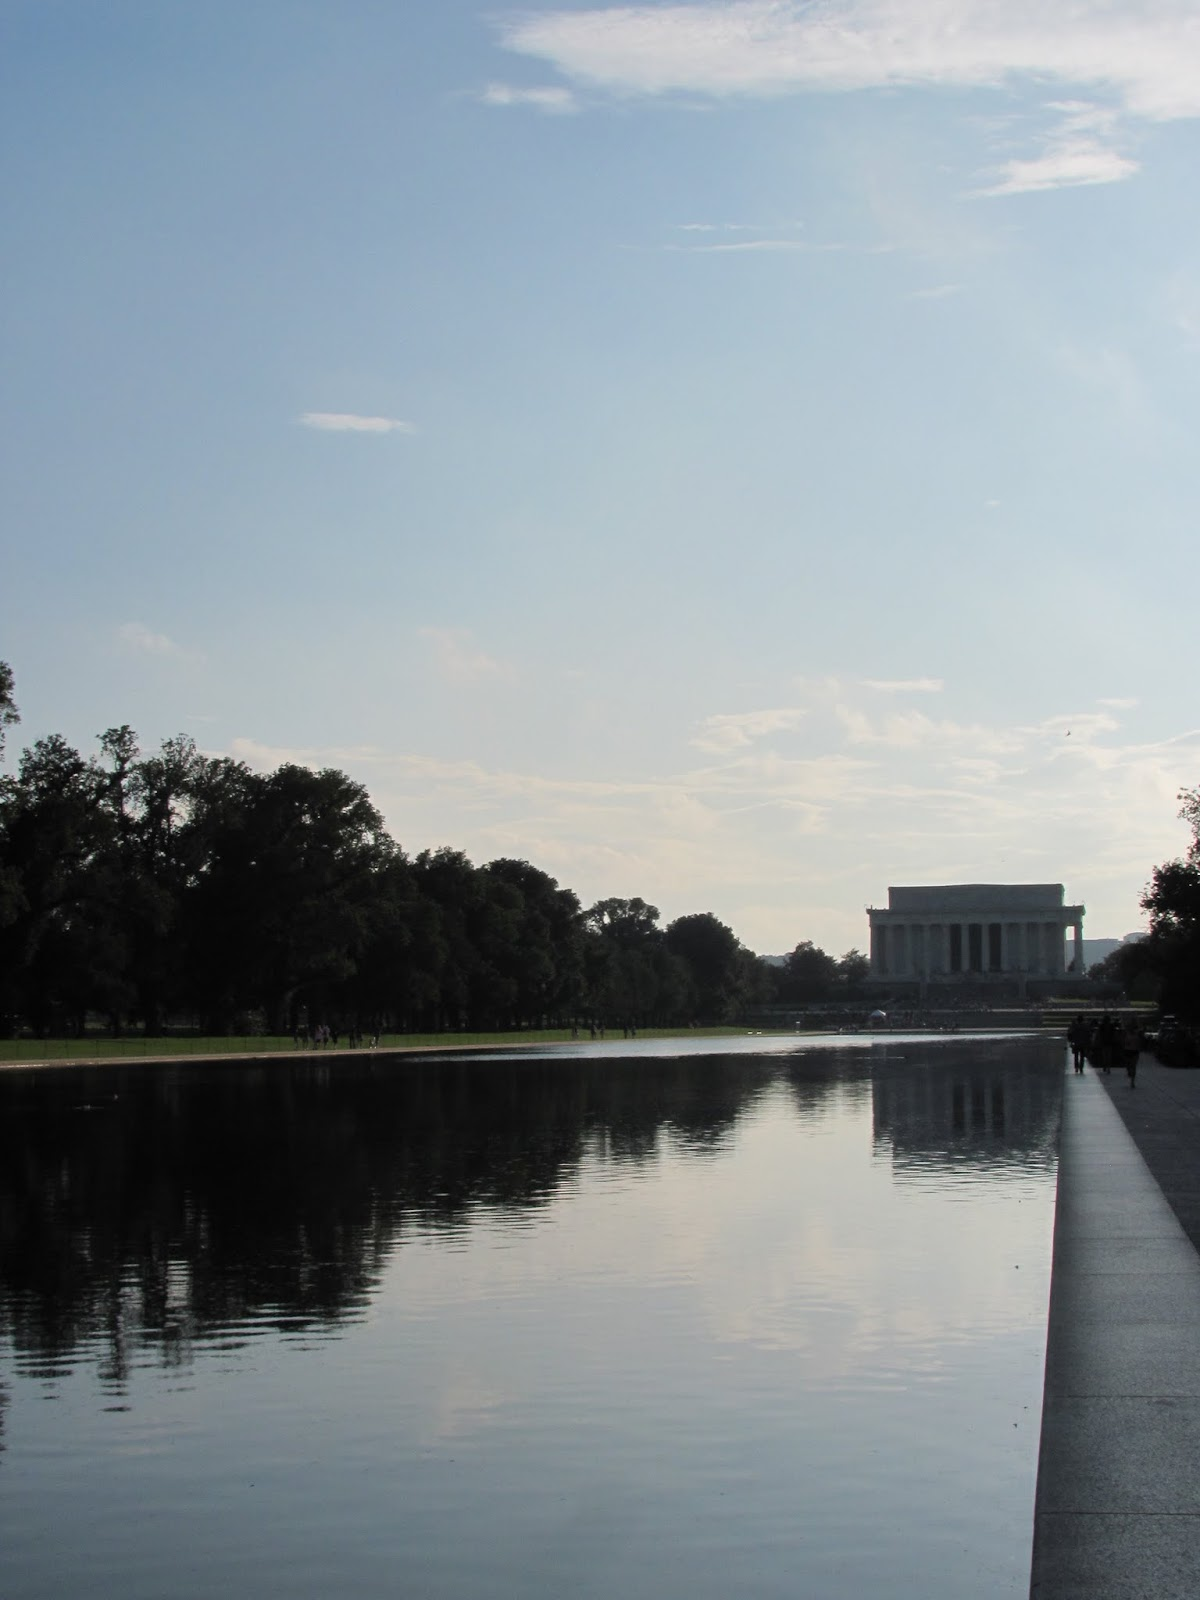 The Lincoln Memorial is seen from the distance along the reflecting pool in Washington, DC